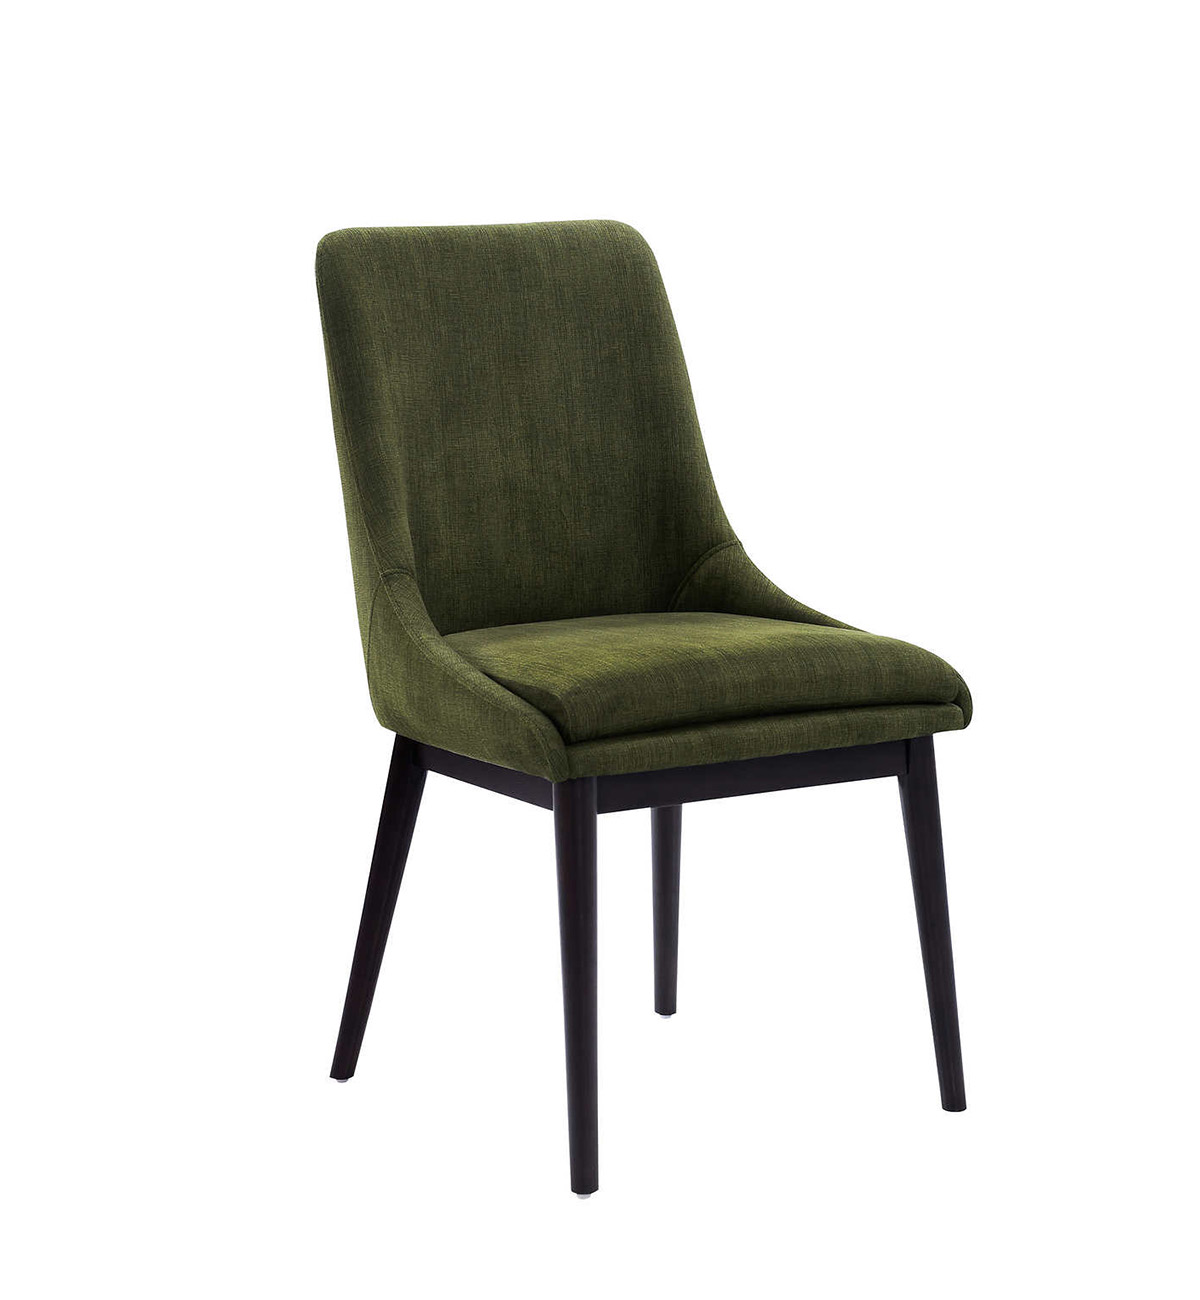 Green Costco Dining chair